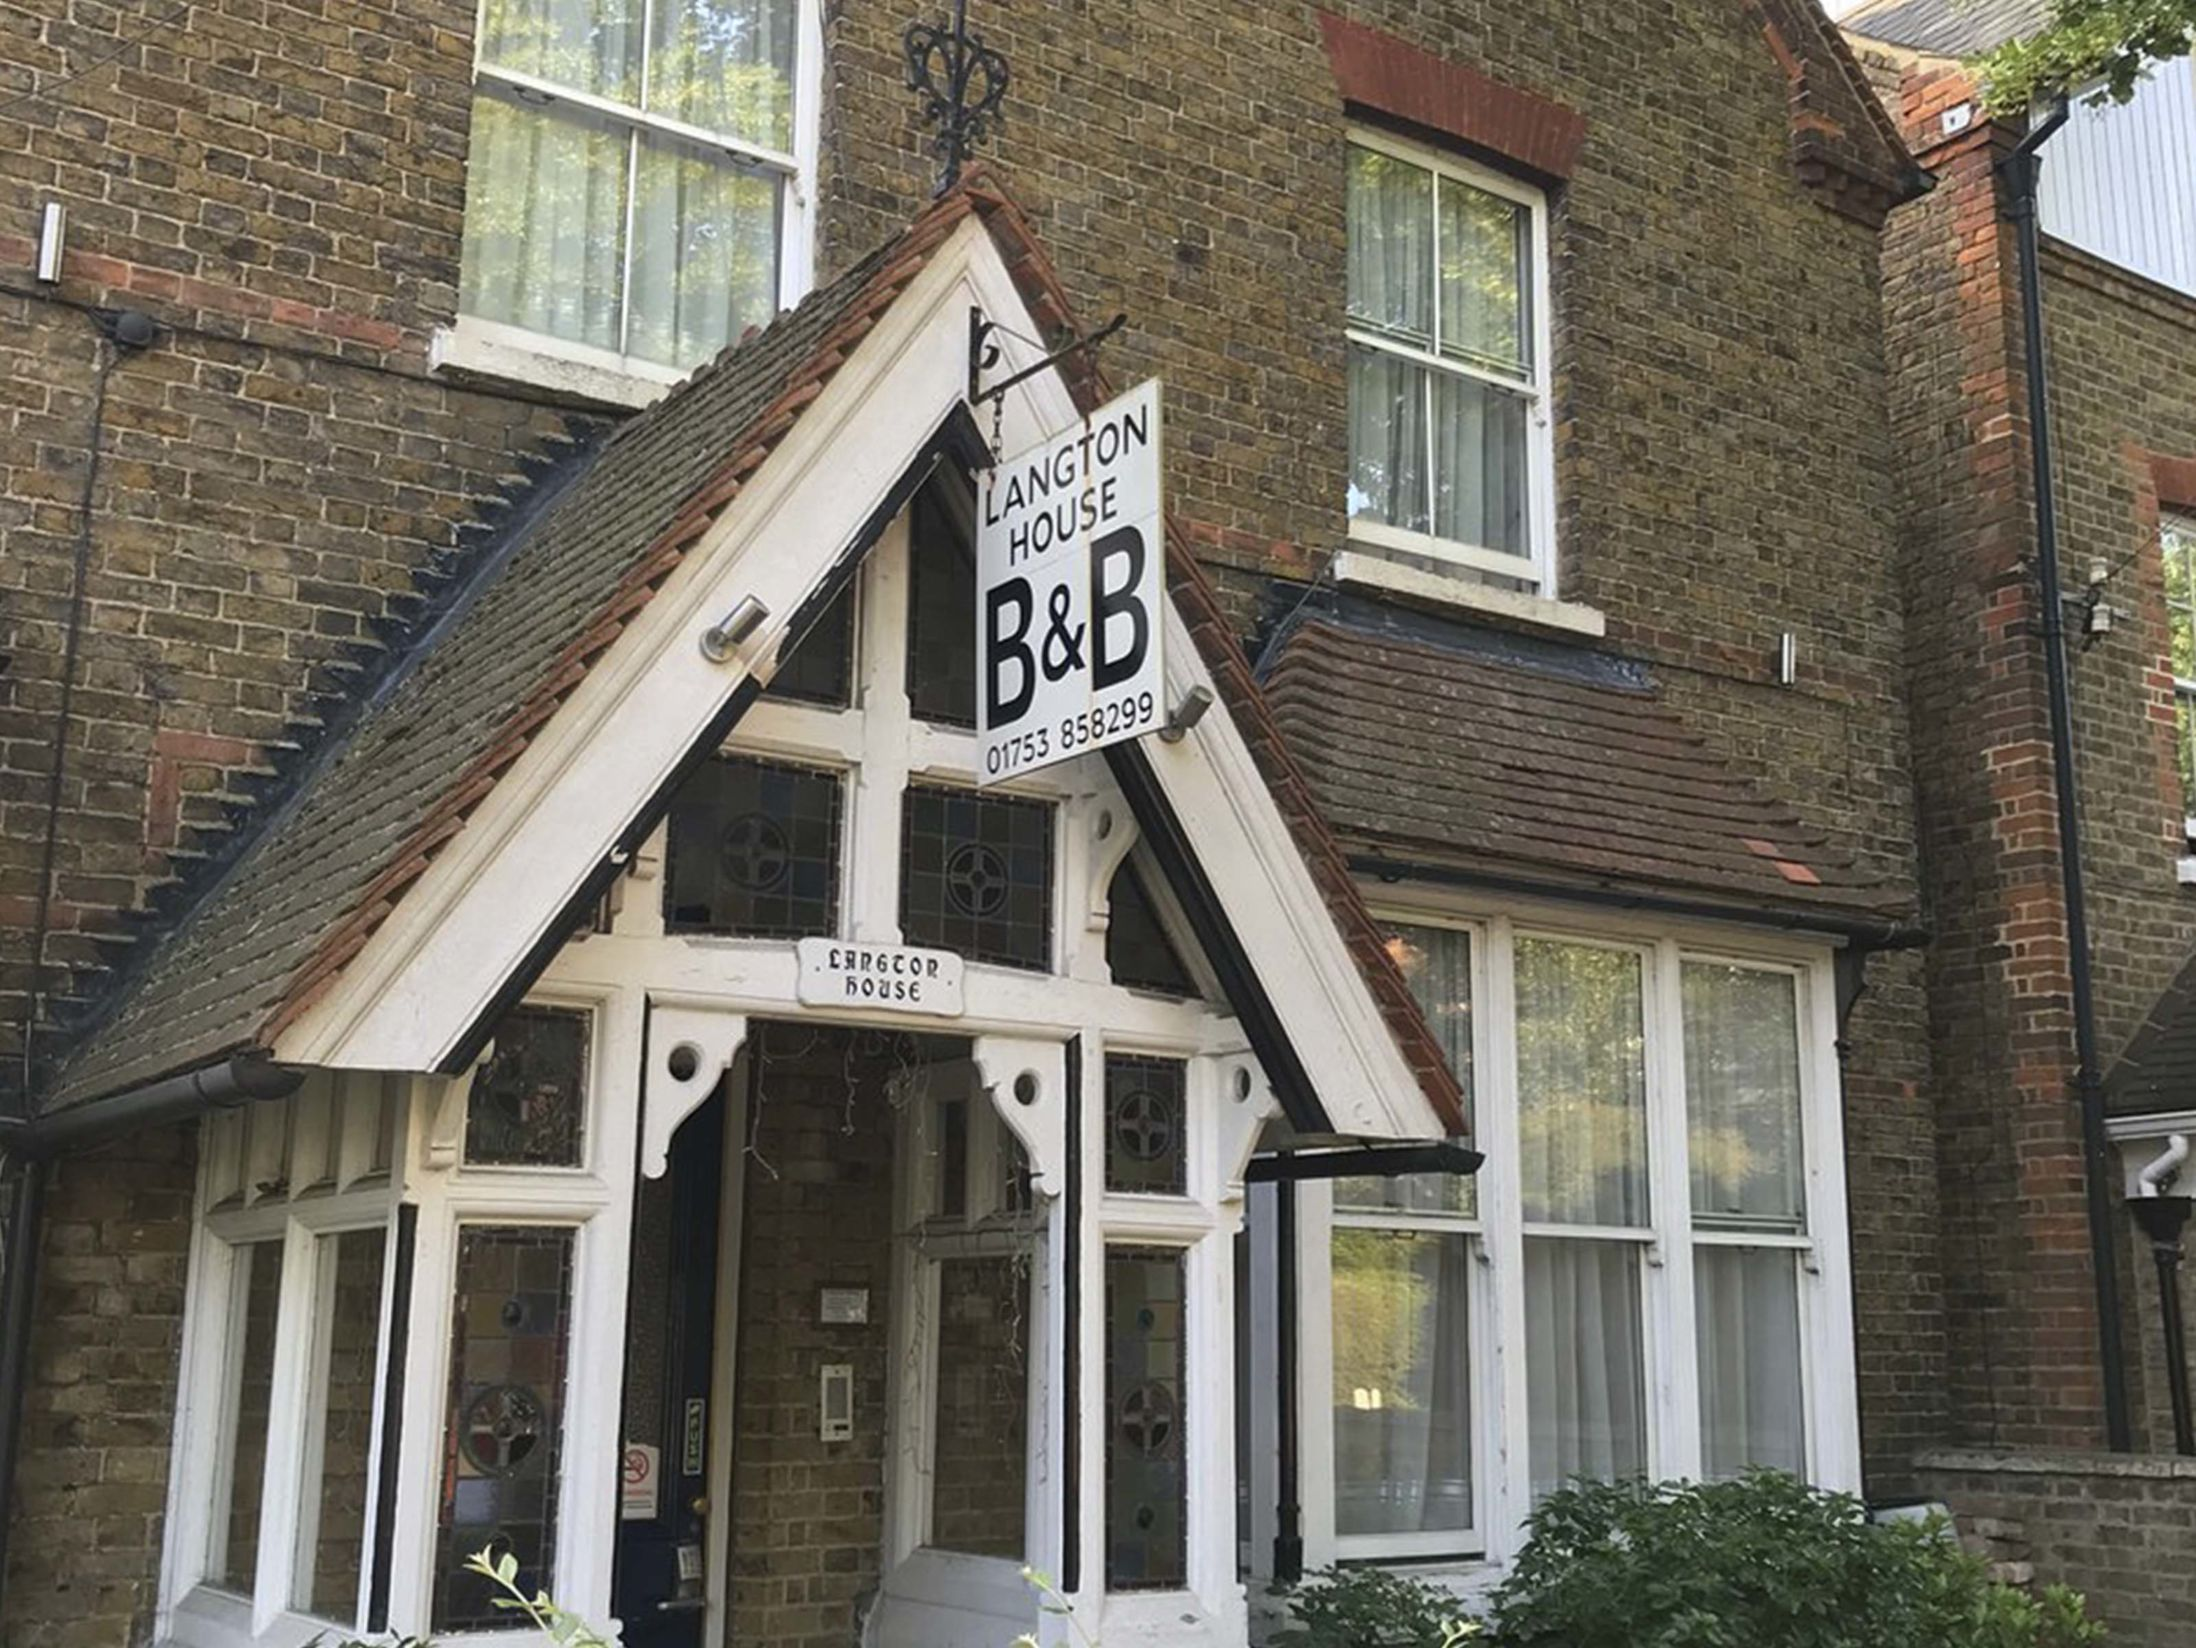 Cheap Hotels in Windsor - Langton House B&B